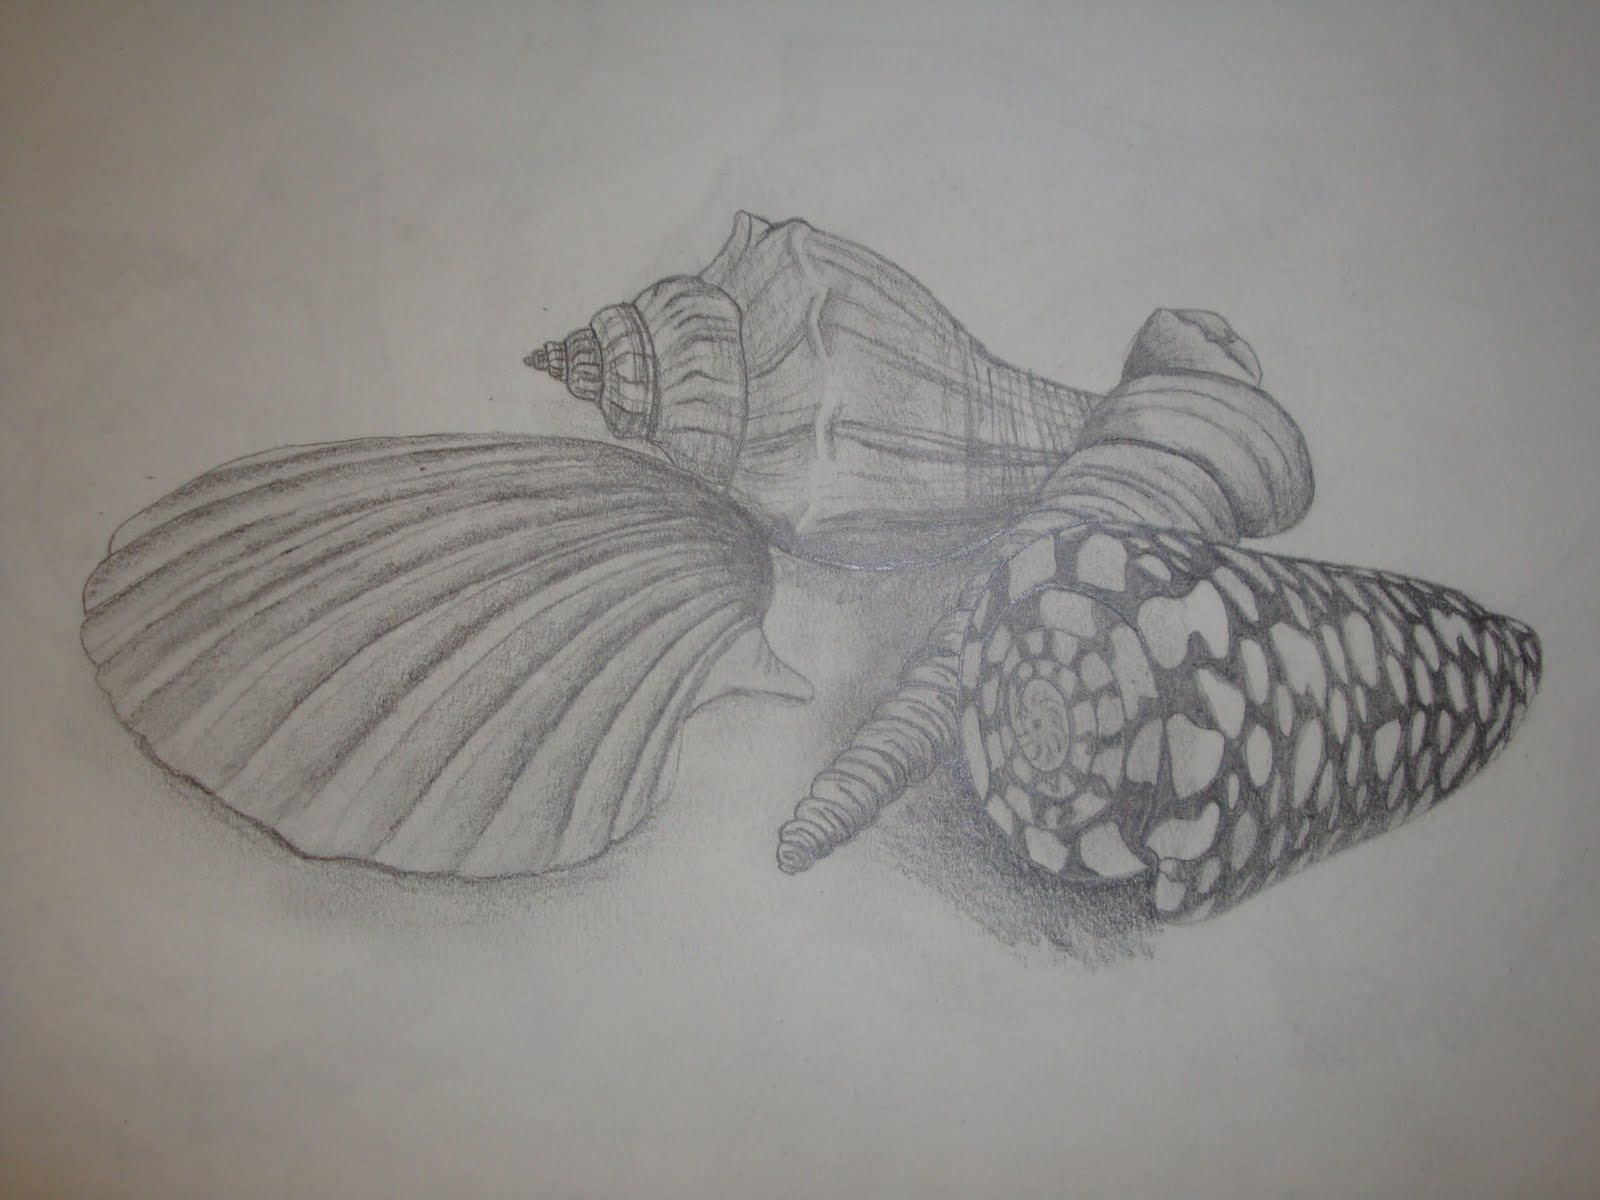 drawings of shells - Google Search | Shell drawings ...